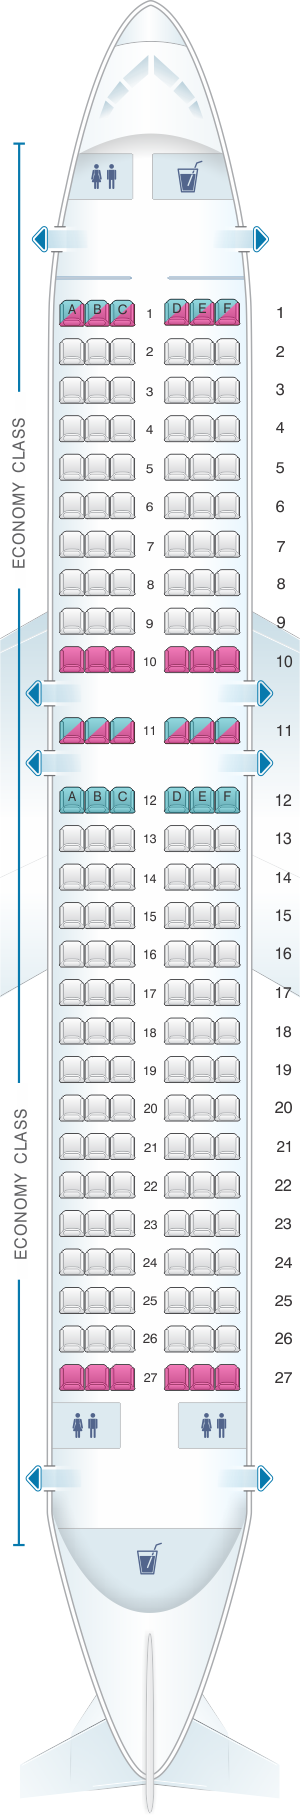 Seat map for Virgin Australia Airbus A320